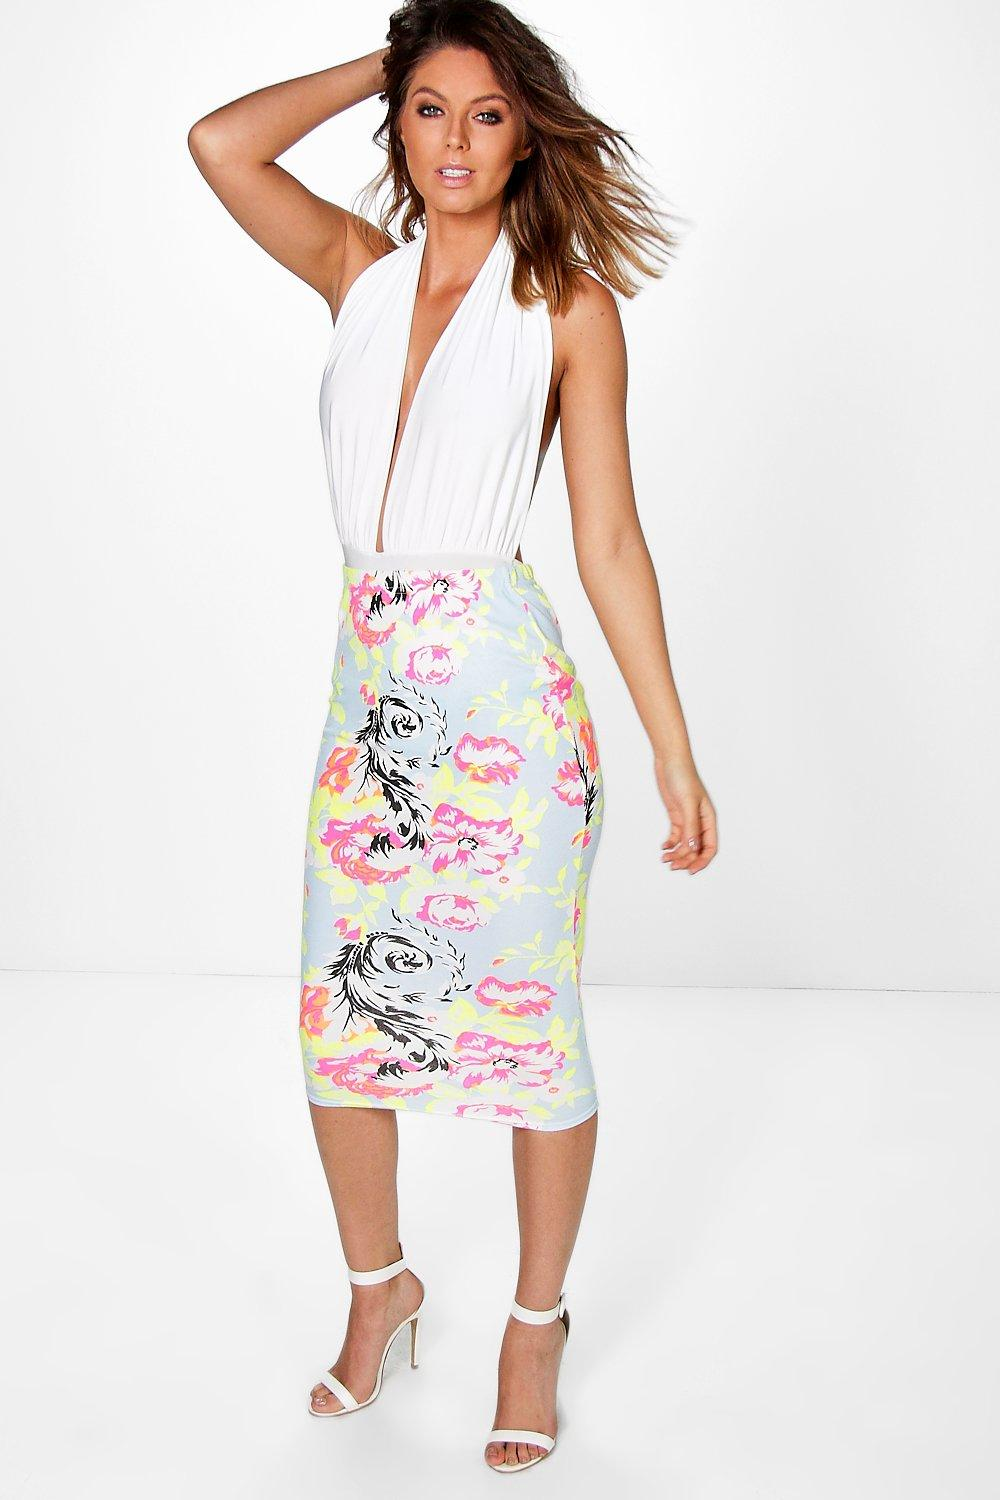 Loriana Bright Floral Bodycon Midi Skirt